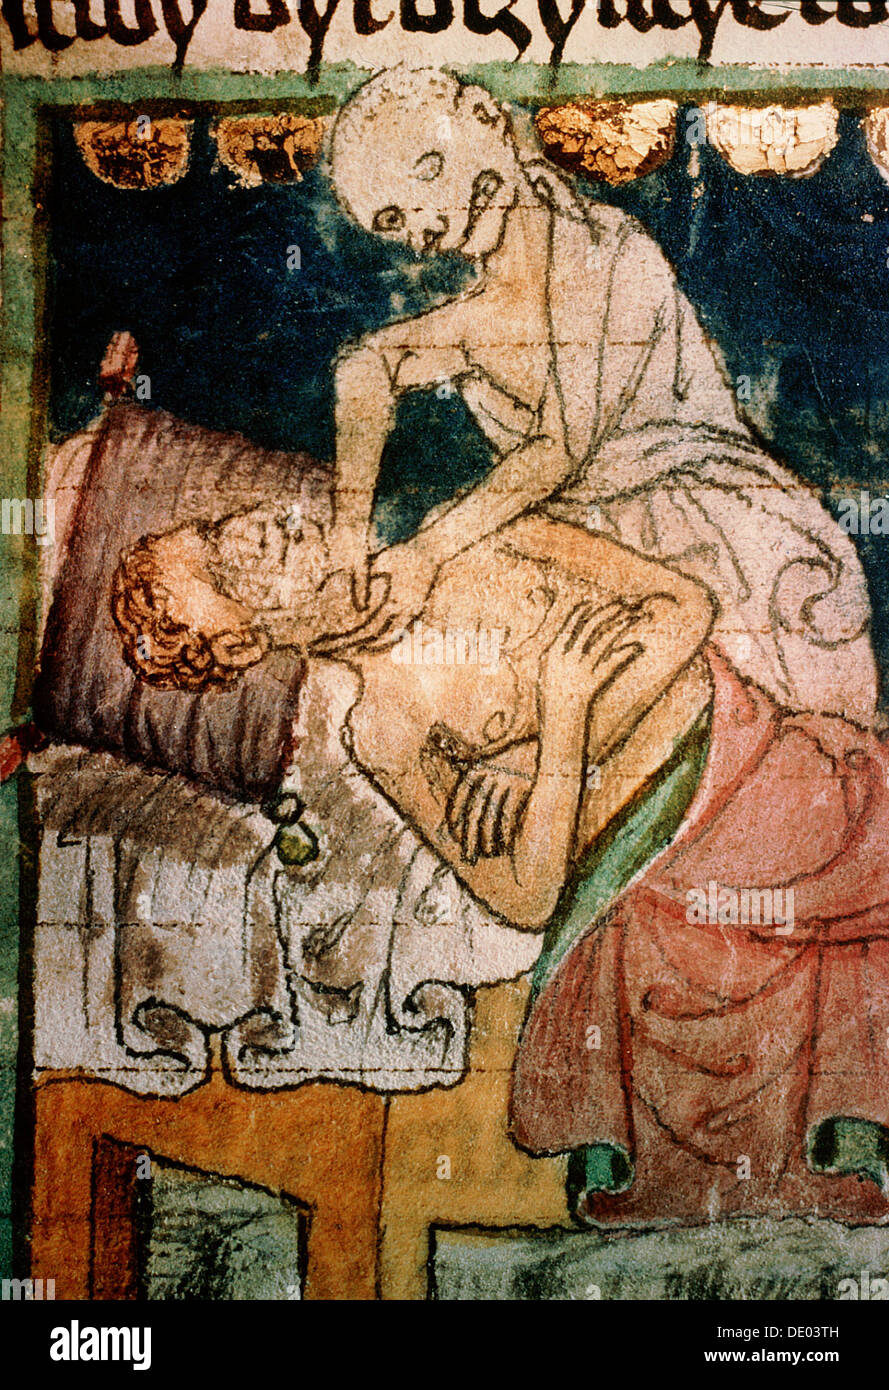 Death strangling a victim of the Black Death, 1376. Artist: Werner Forman